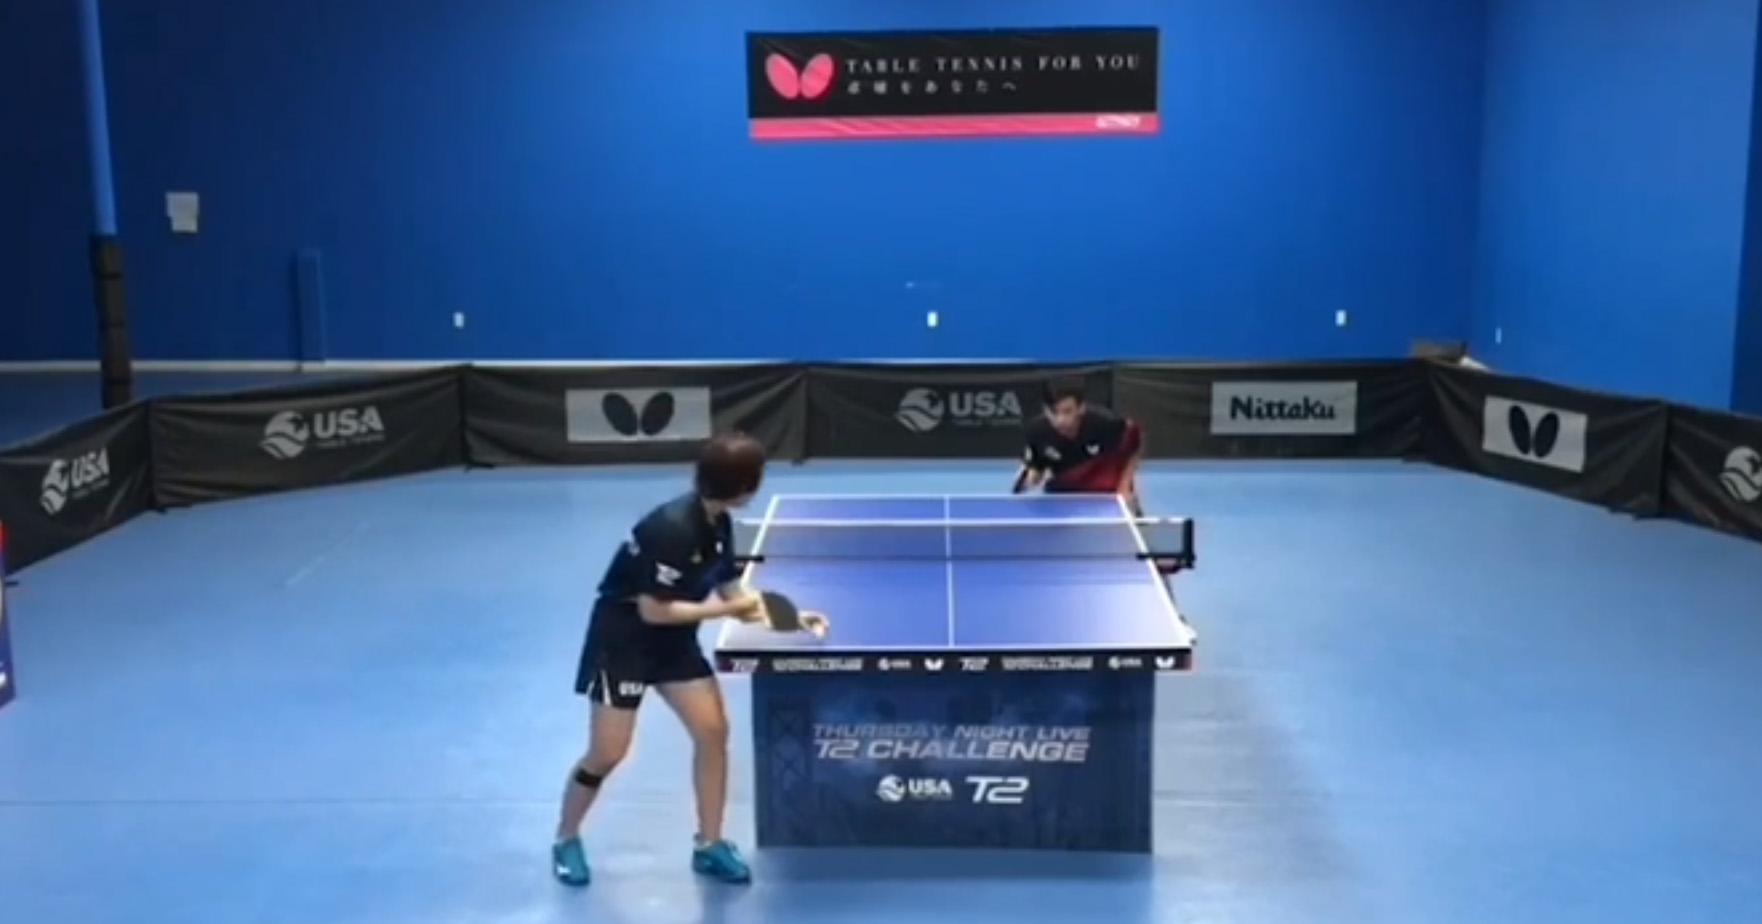 Wang Makes It 4-1 for Team Butterfly in USATT's Live Challenge Series